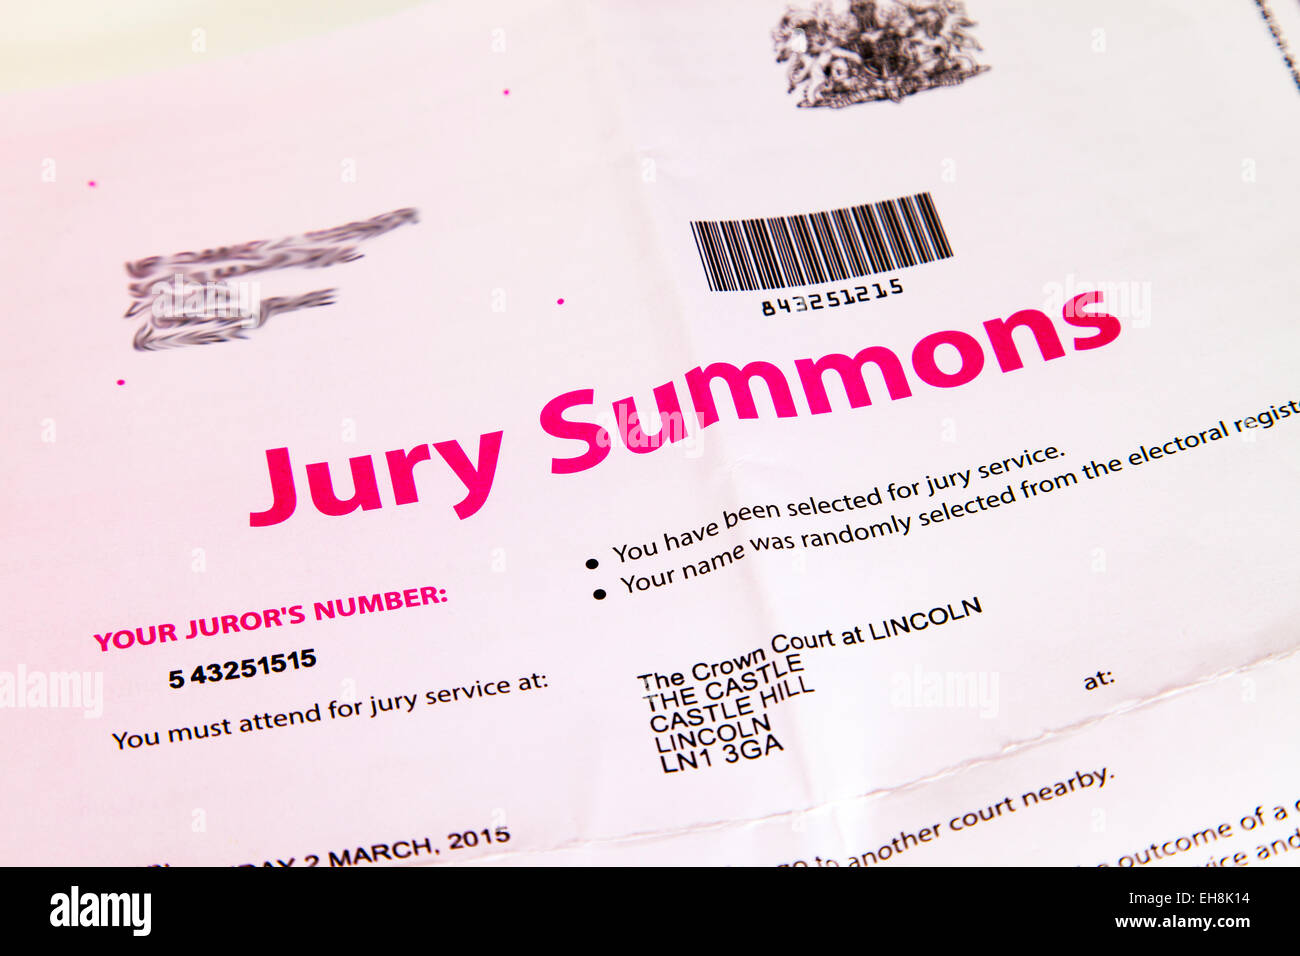 Jury summons letter letterhead crown court appearance Lincoln uk england 2015 cutout white background copy space - Stock Image